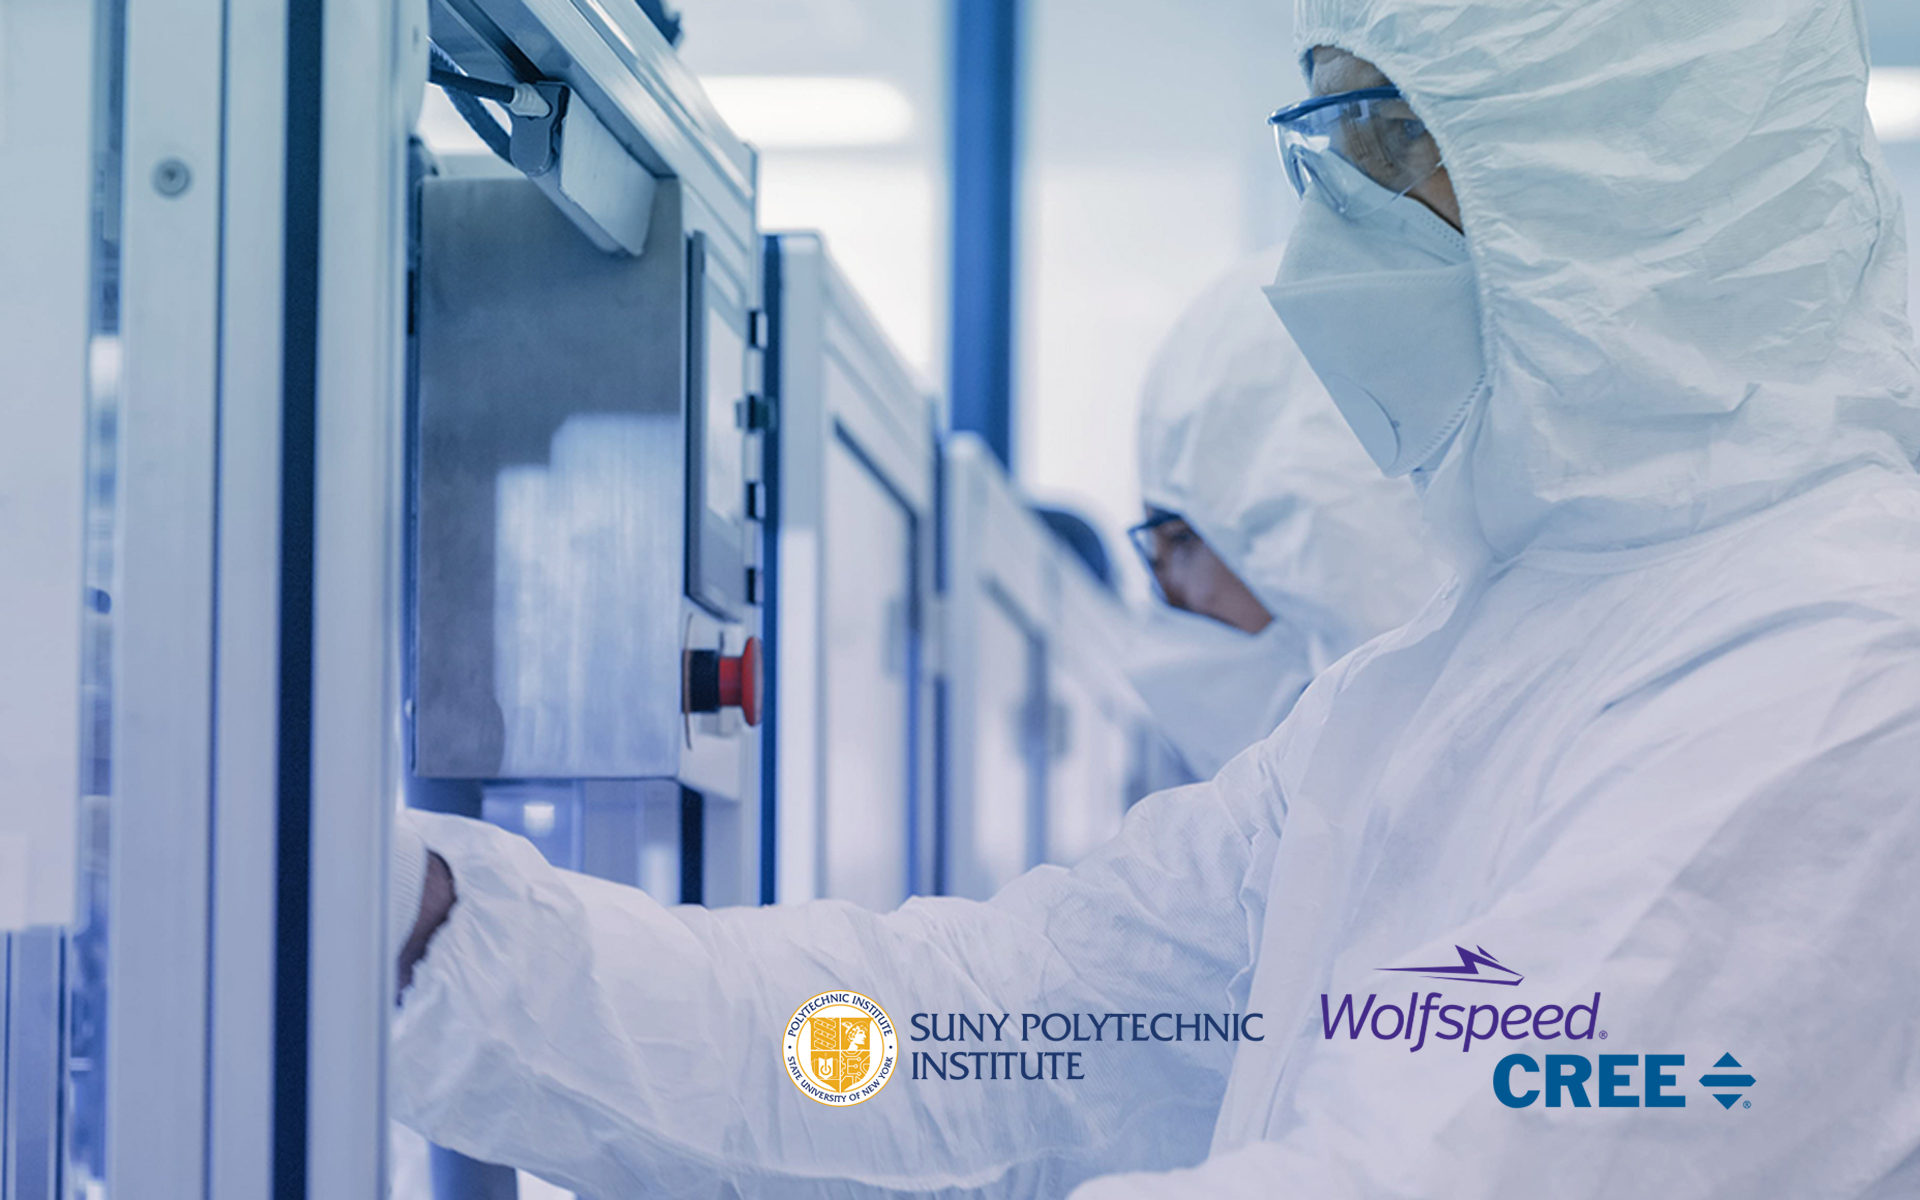 Cleanroom work with Cree Wolfspeed SUNY Poly logo